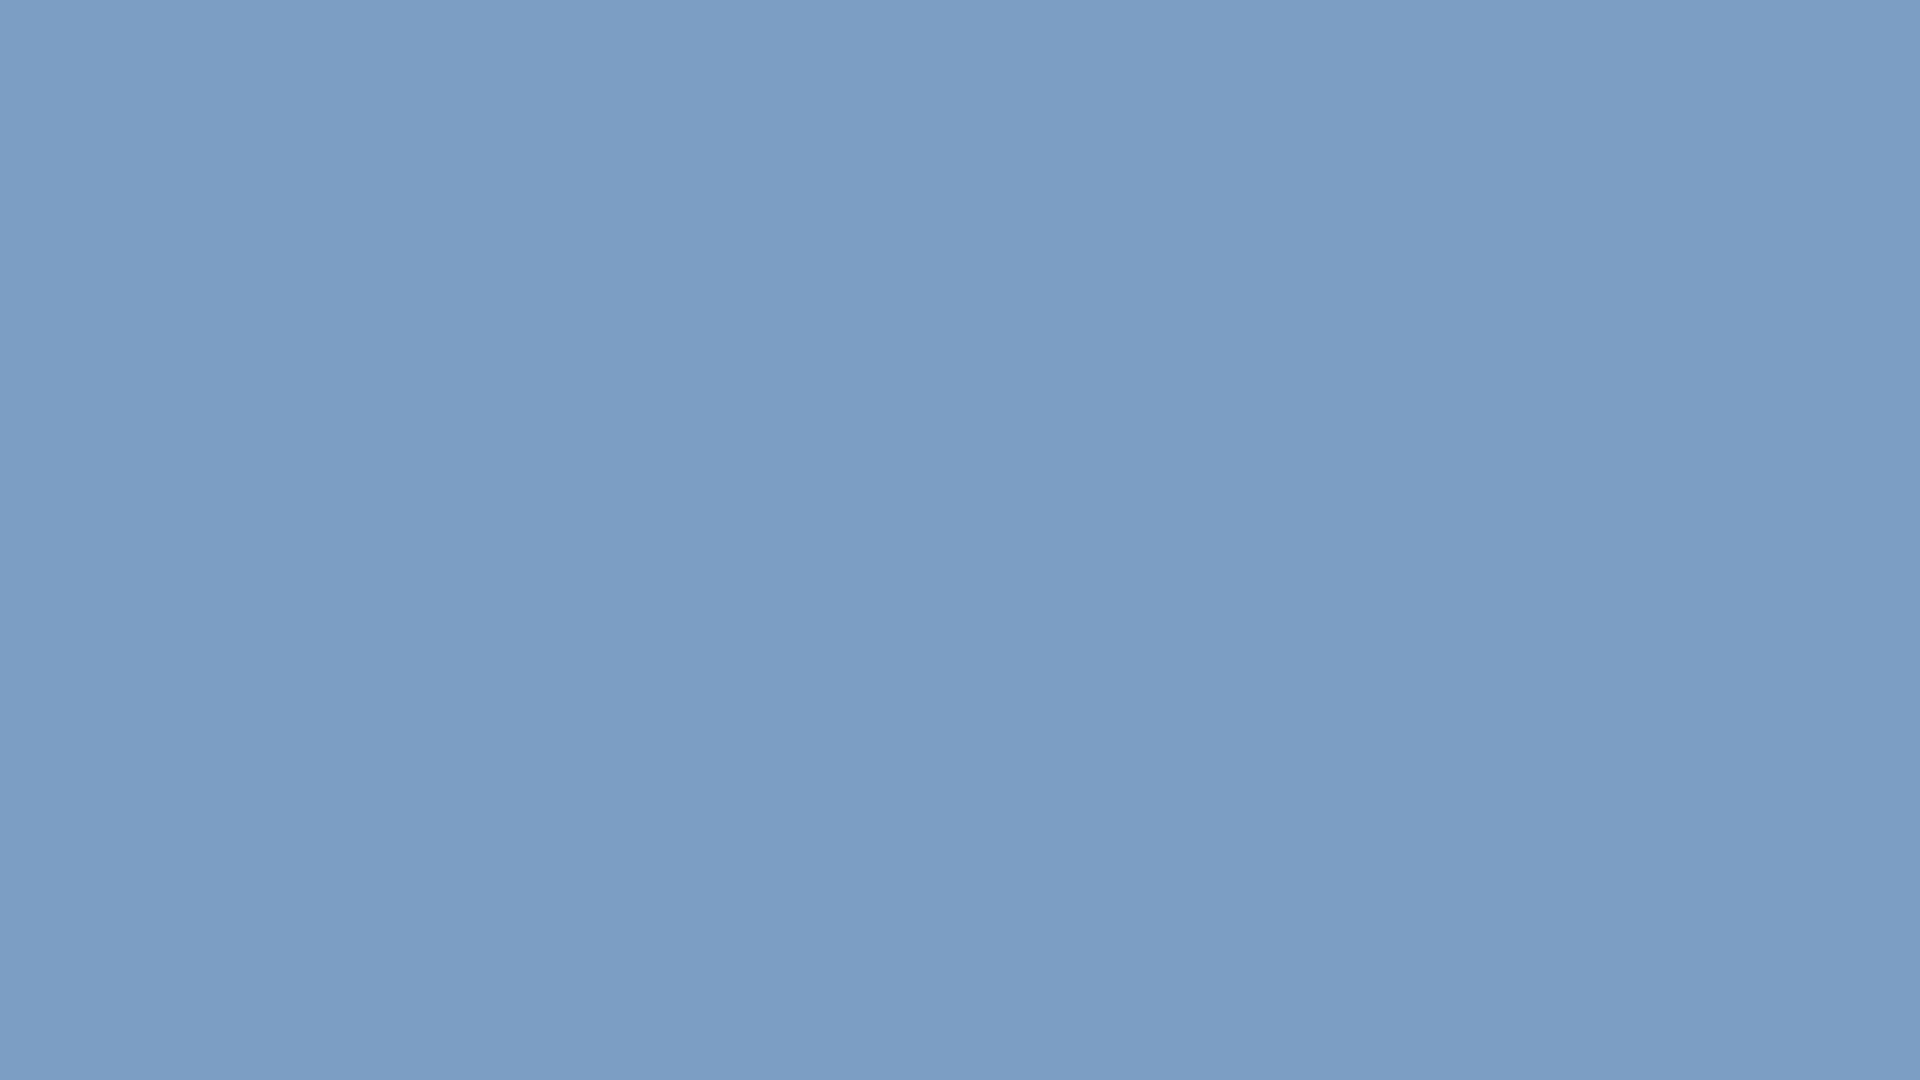 Periwinkle Blue Solid Color Background